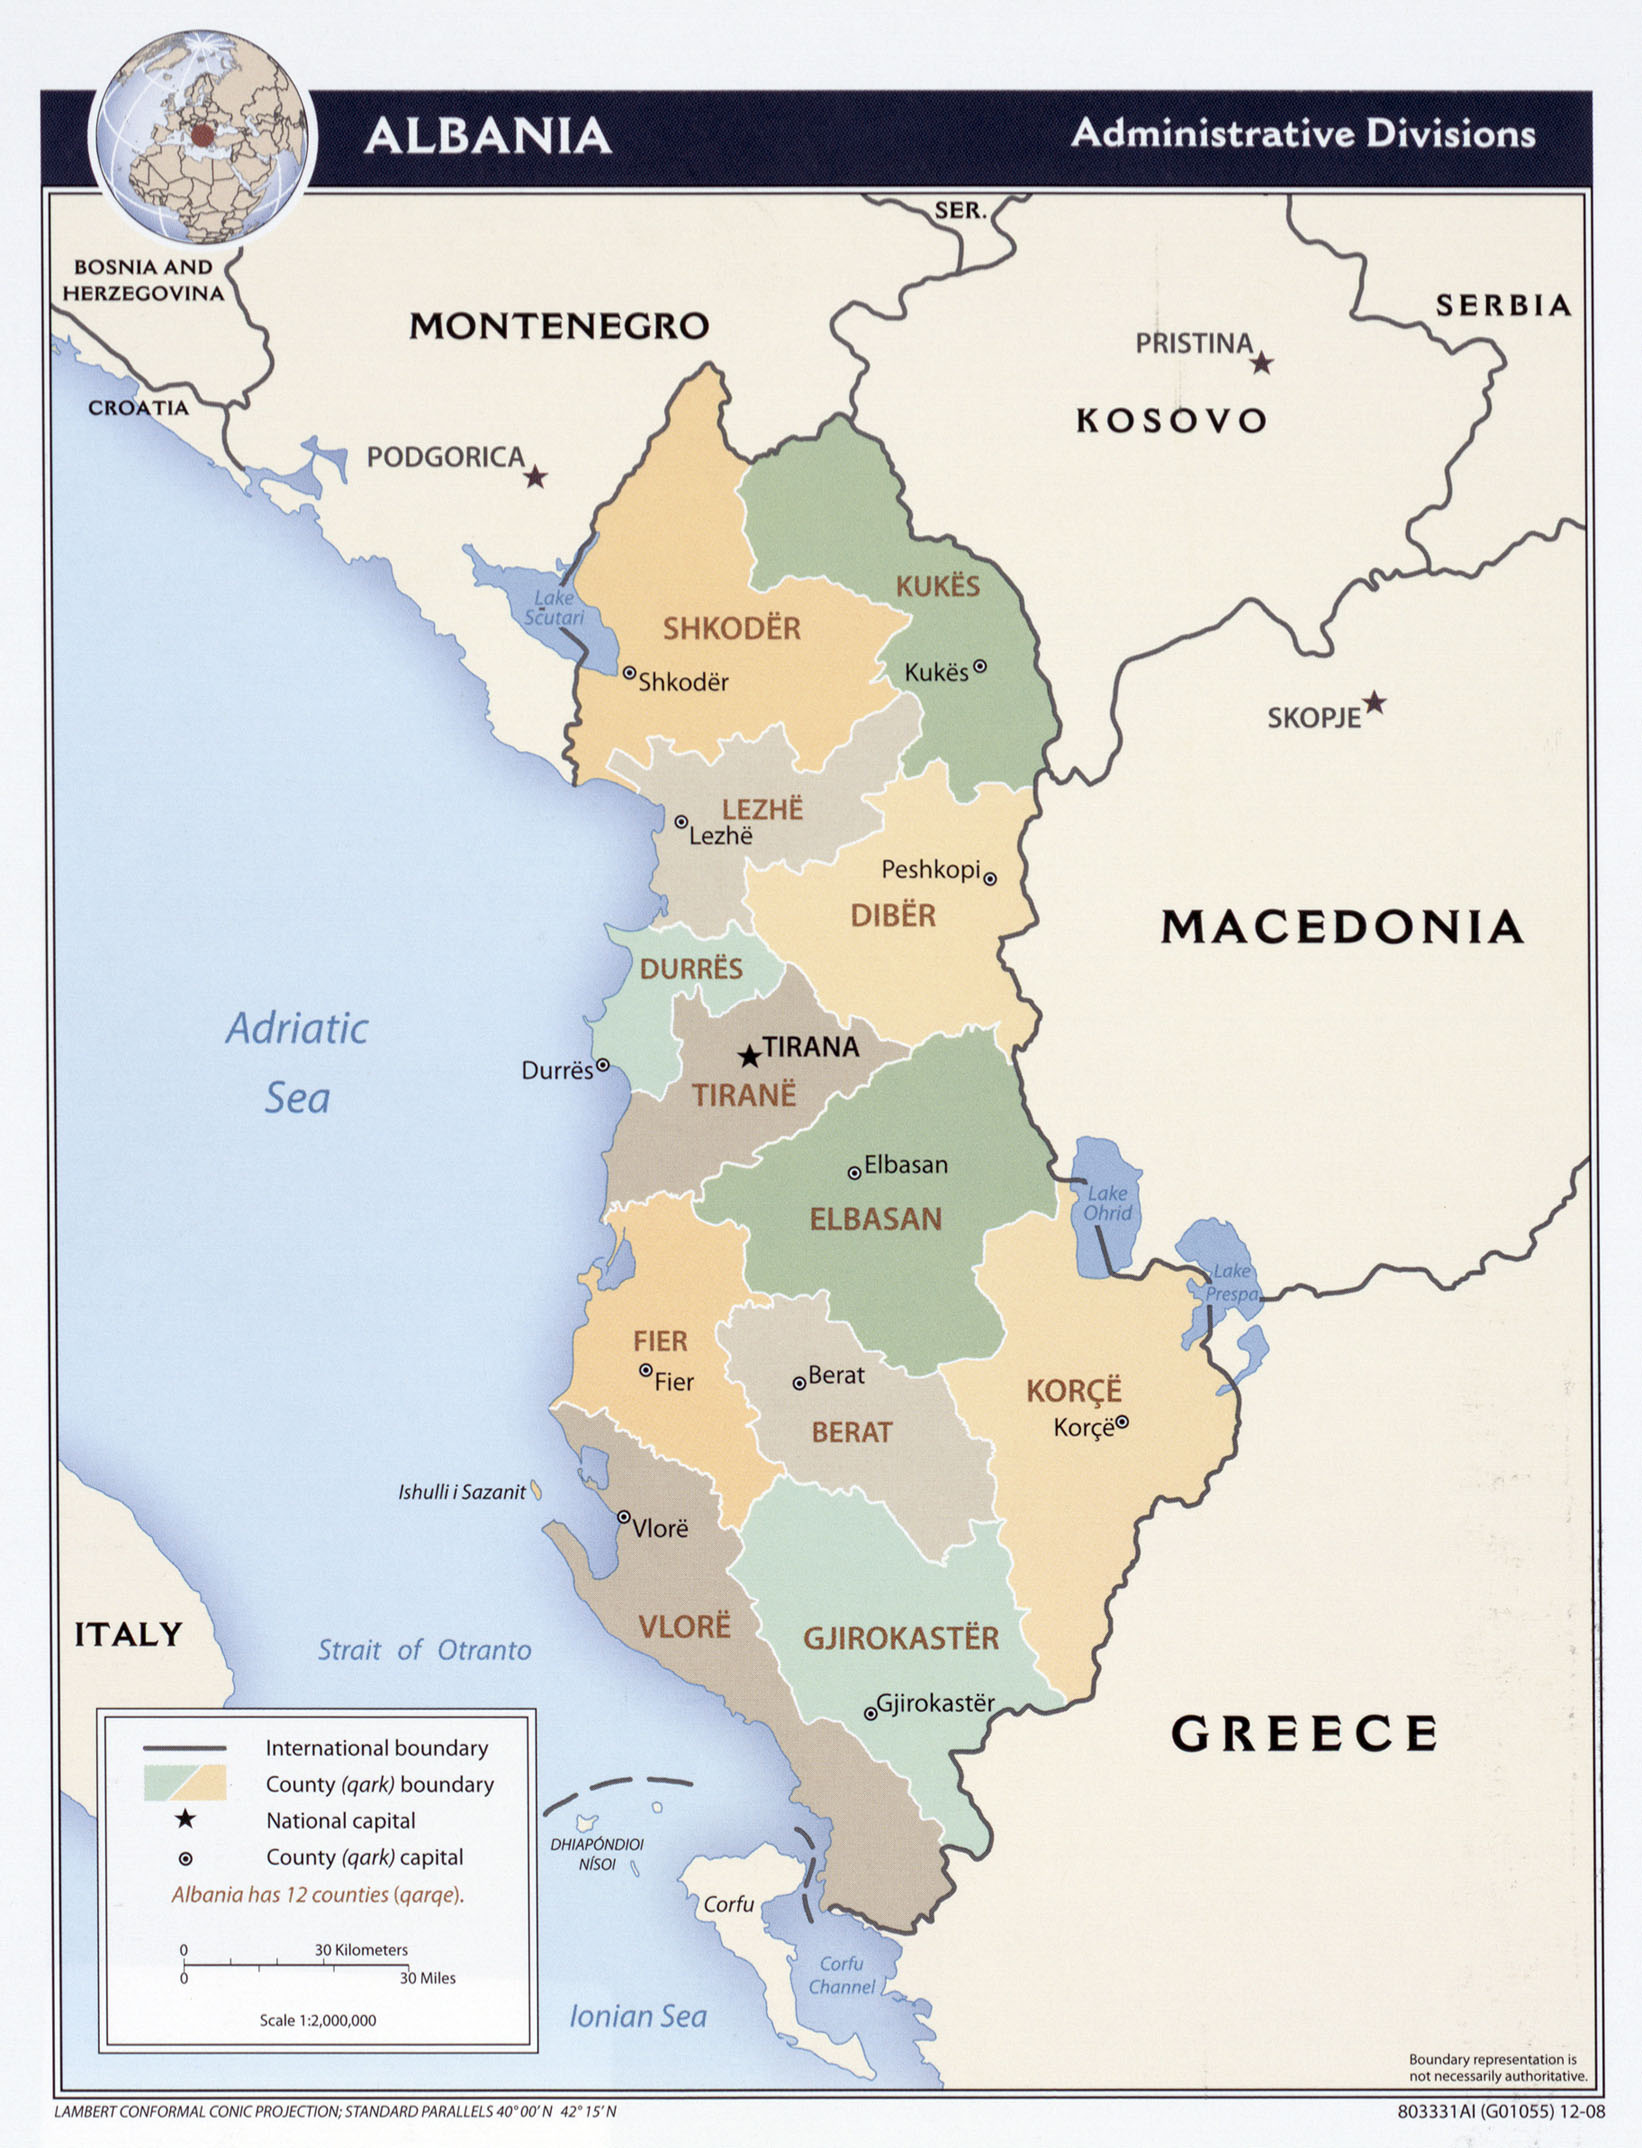 FileAlbania administrative divisions Map 2008jpg The Work of